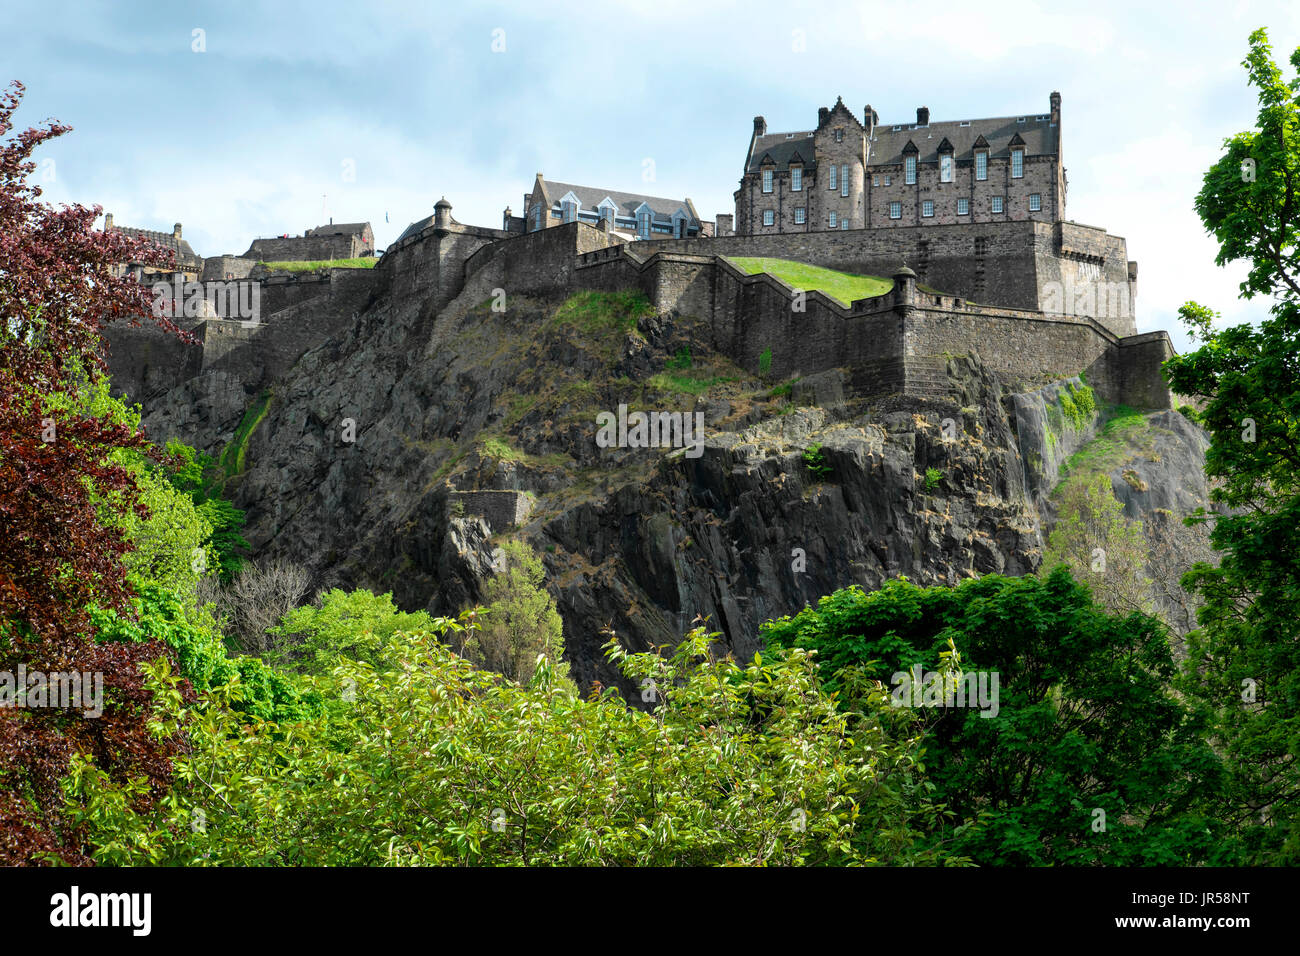 View to Edinburgh Castle, Princes Street Gardens, Edinburgh, Scotland, United Kingdom - Stock Image